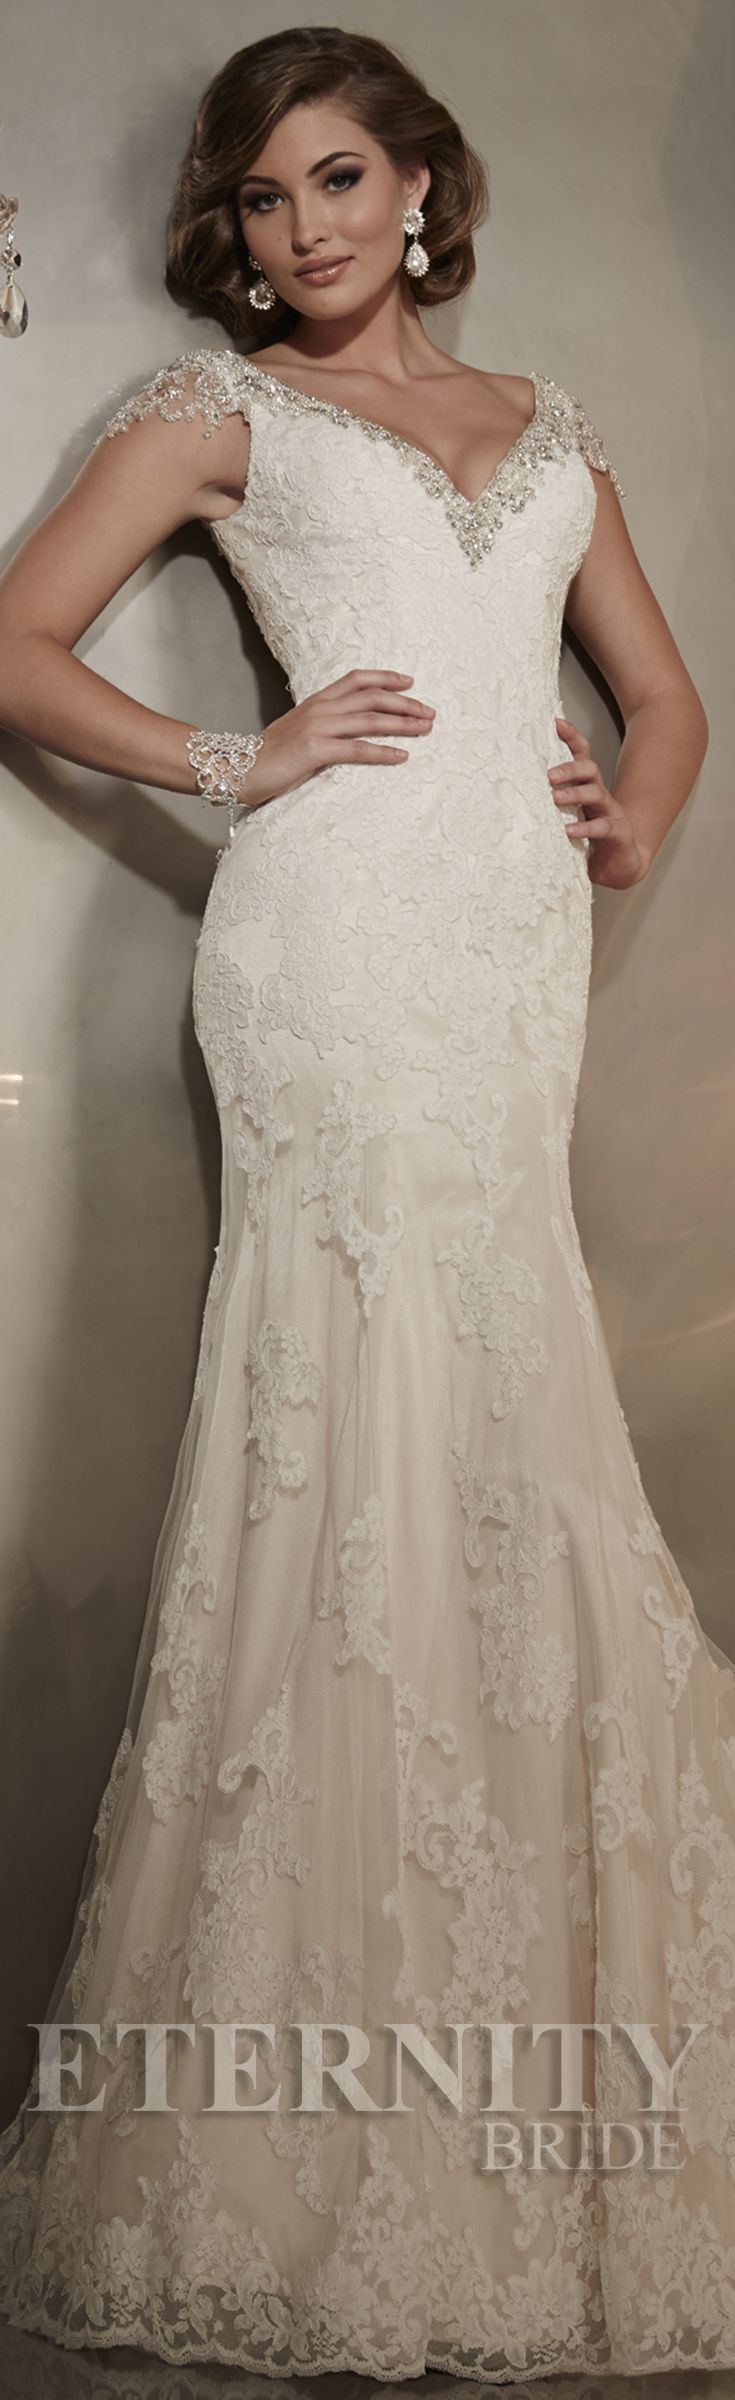 D5289 wedding dress from Eternity Bride. View more of our beautiful ...